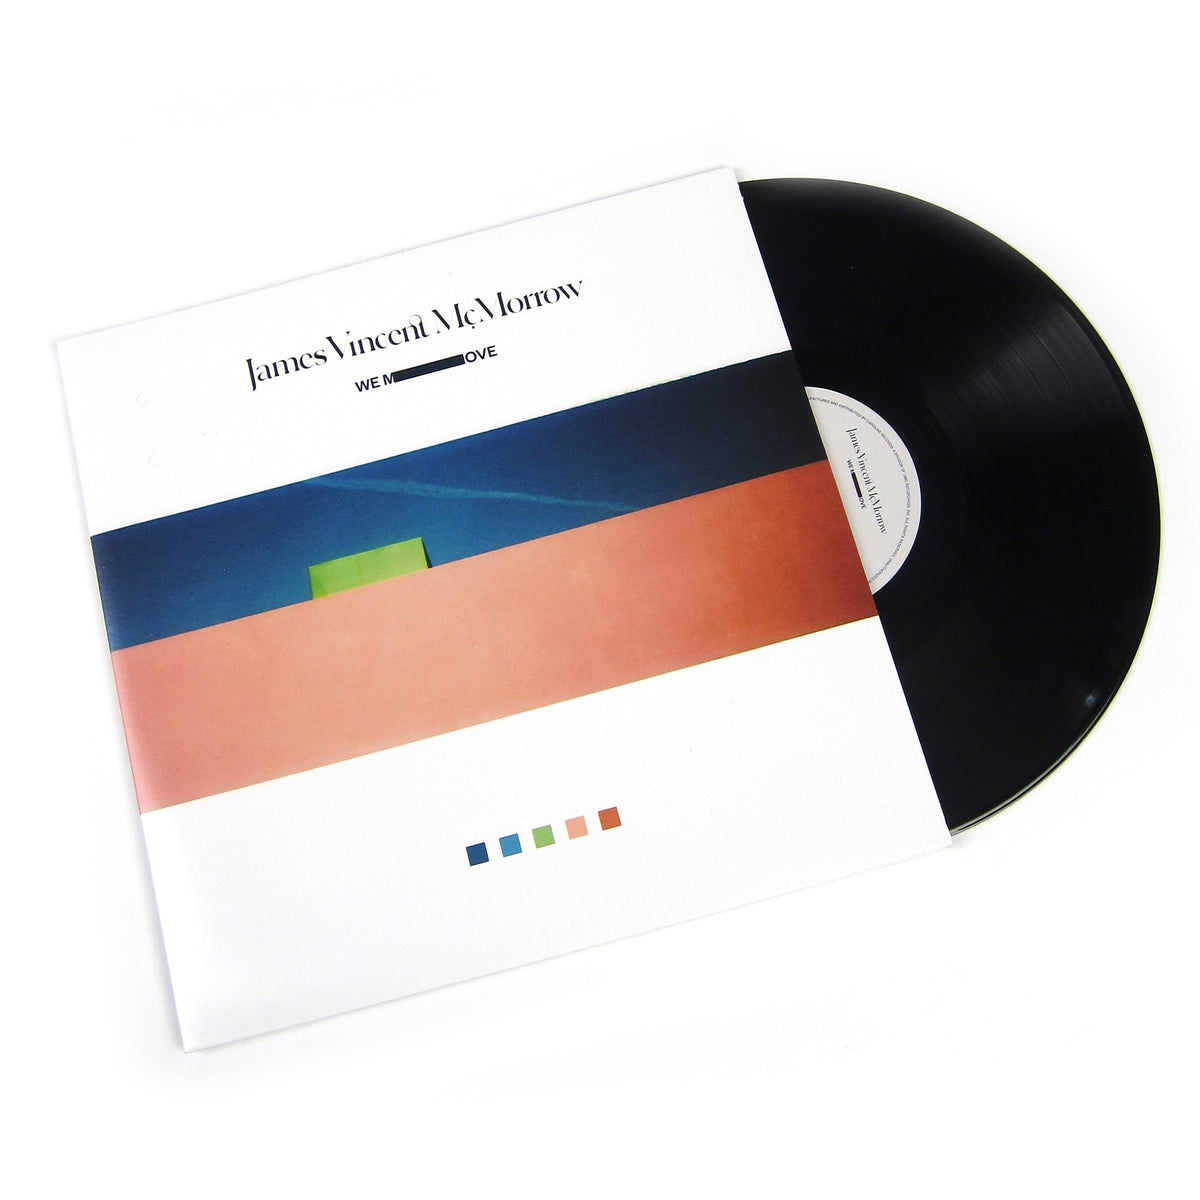 James Vincent McMorrow: We Move Vinyl LP